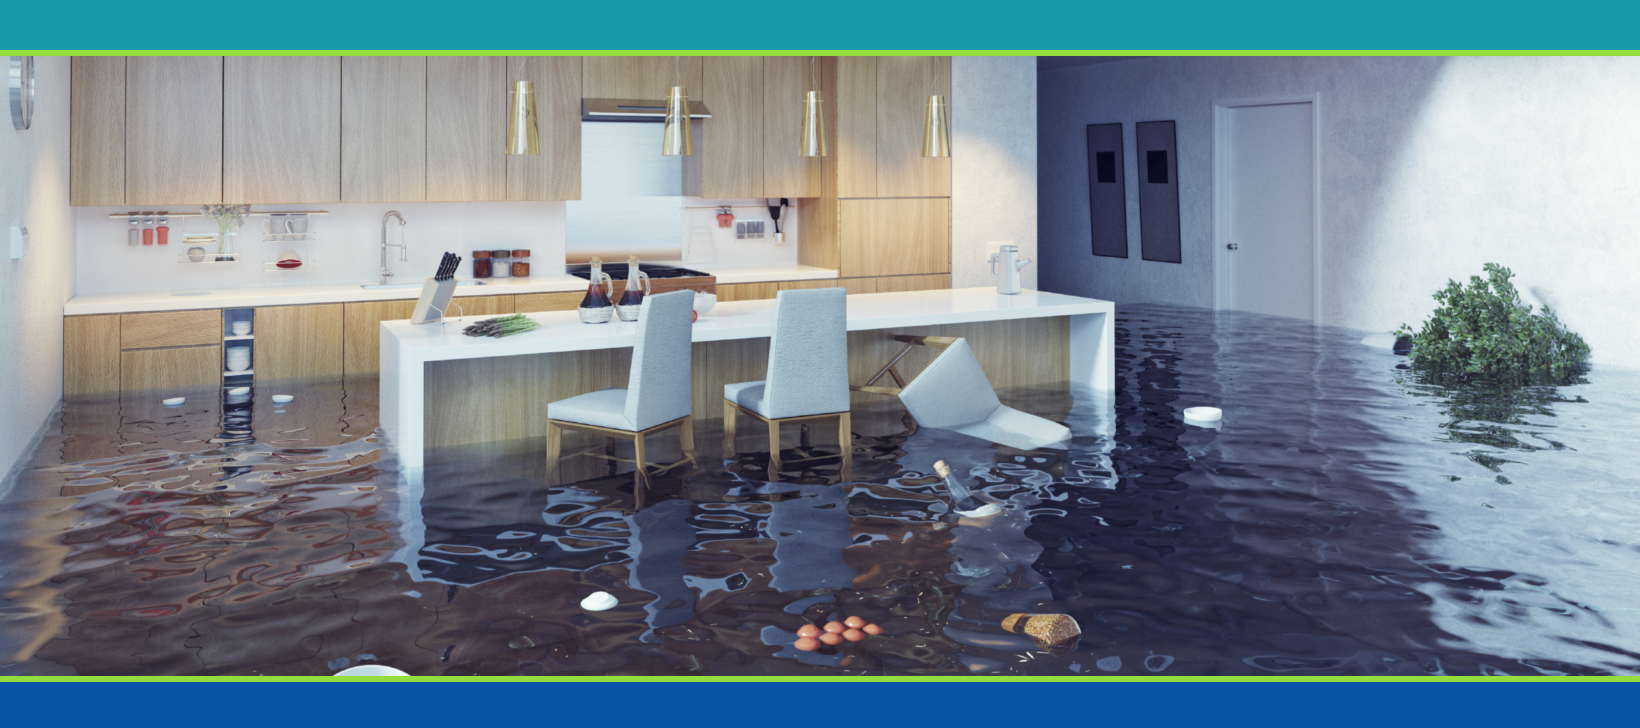 water damage Calvert county, water damage, frozen pipes, basement floods